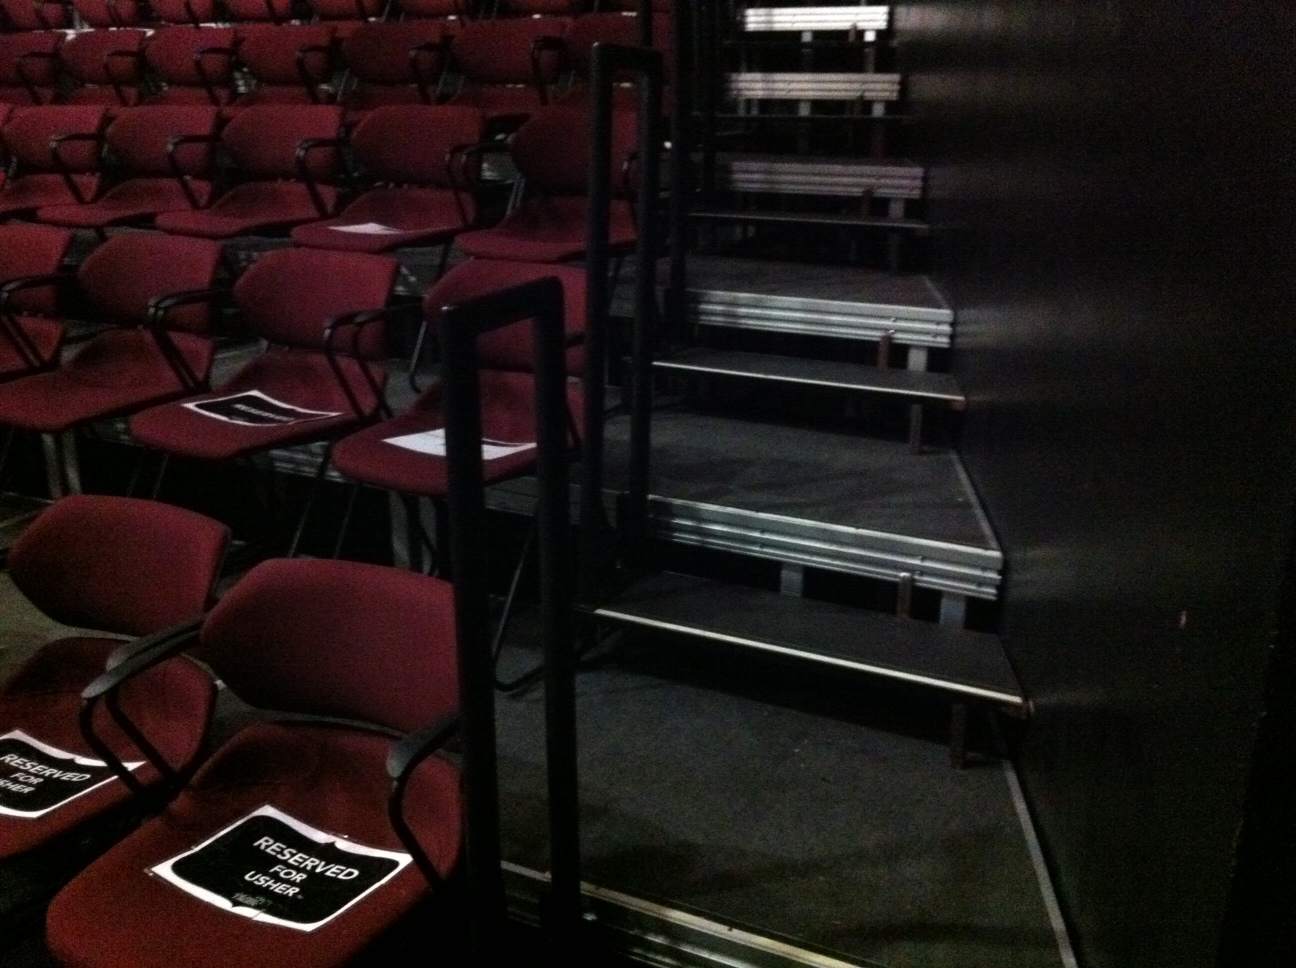 theatre seating stairs with rails